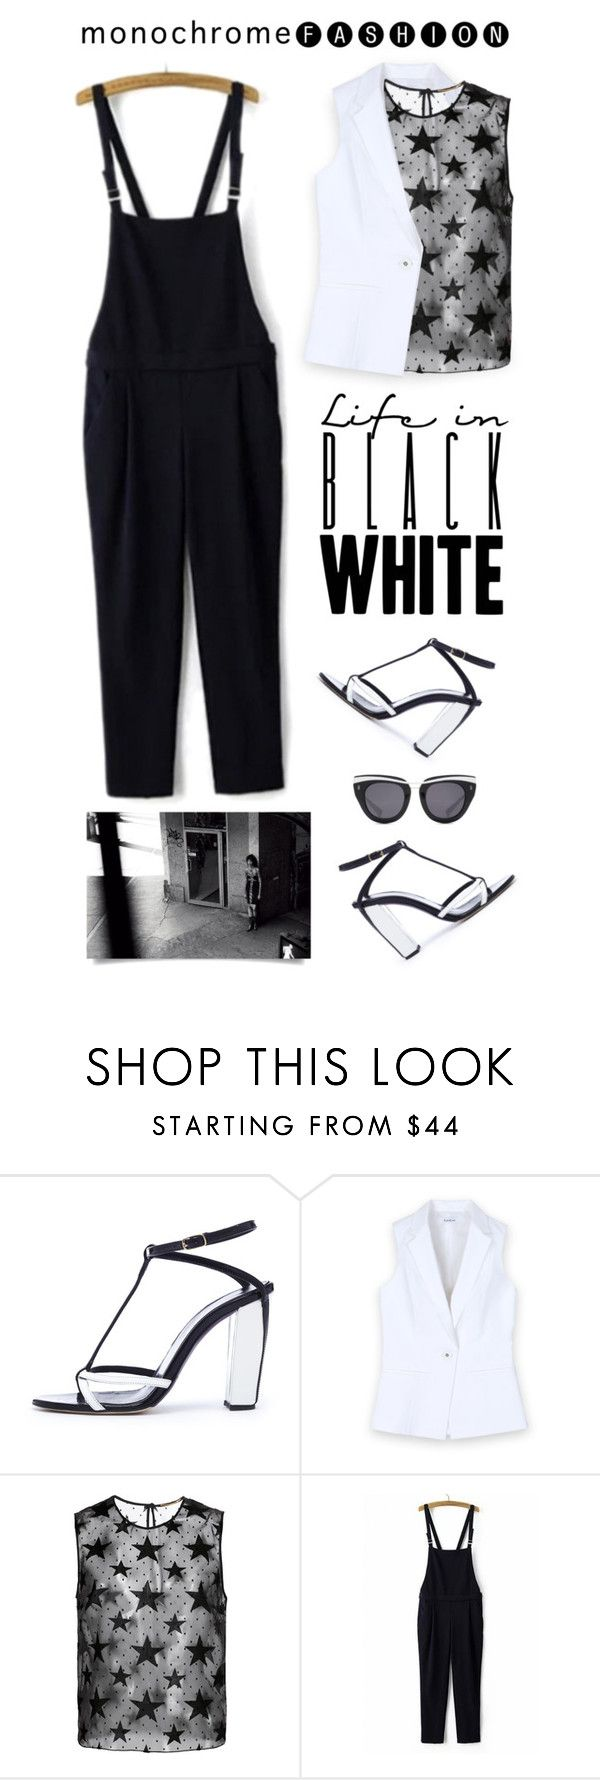 """Make It Monochrome"" by shortyluv718 ❤ liked on Polyvore featuring Oscar de la Renta, Bebe, Yves Saint Laurent, WithChic, HOOK LDN, blackandwhite, overalls, contestentry and monocrhome"